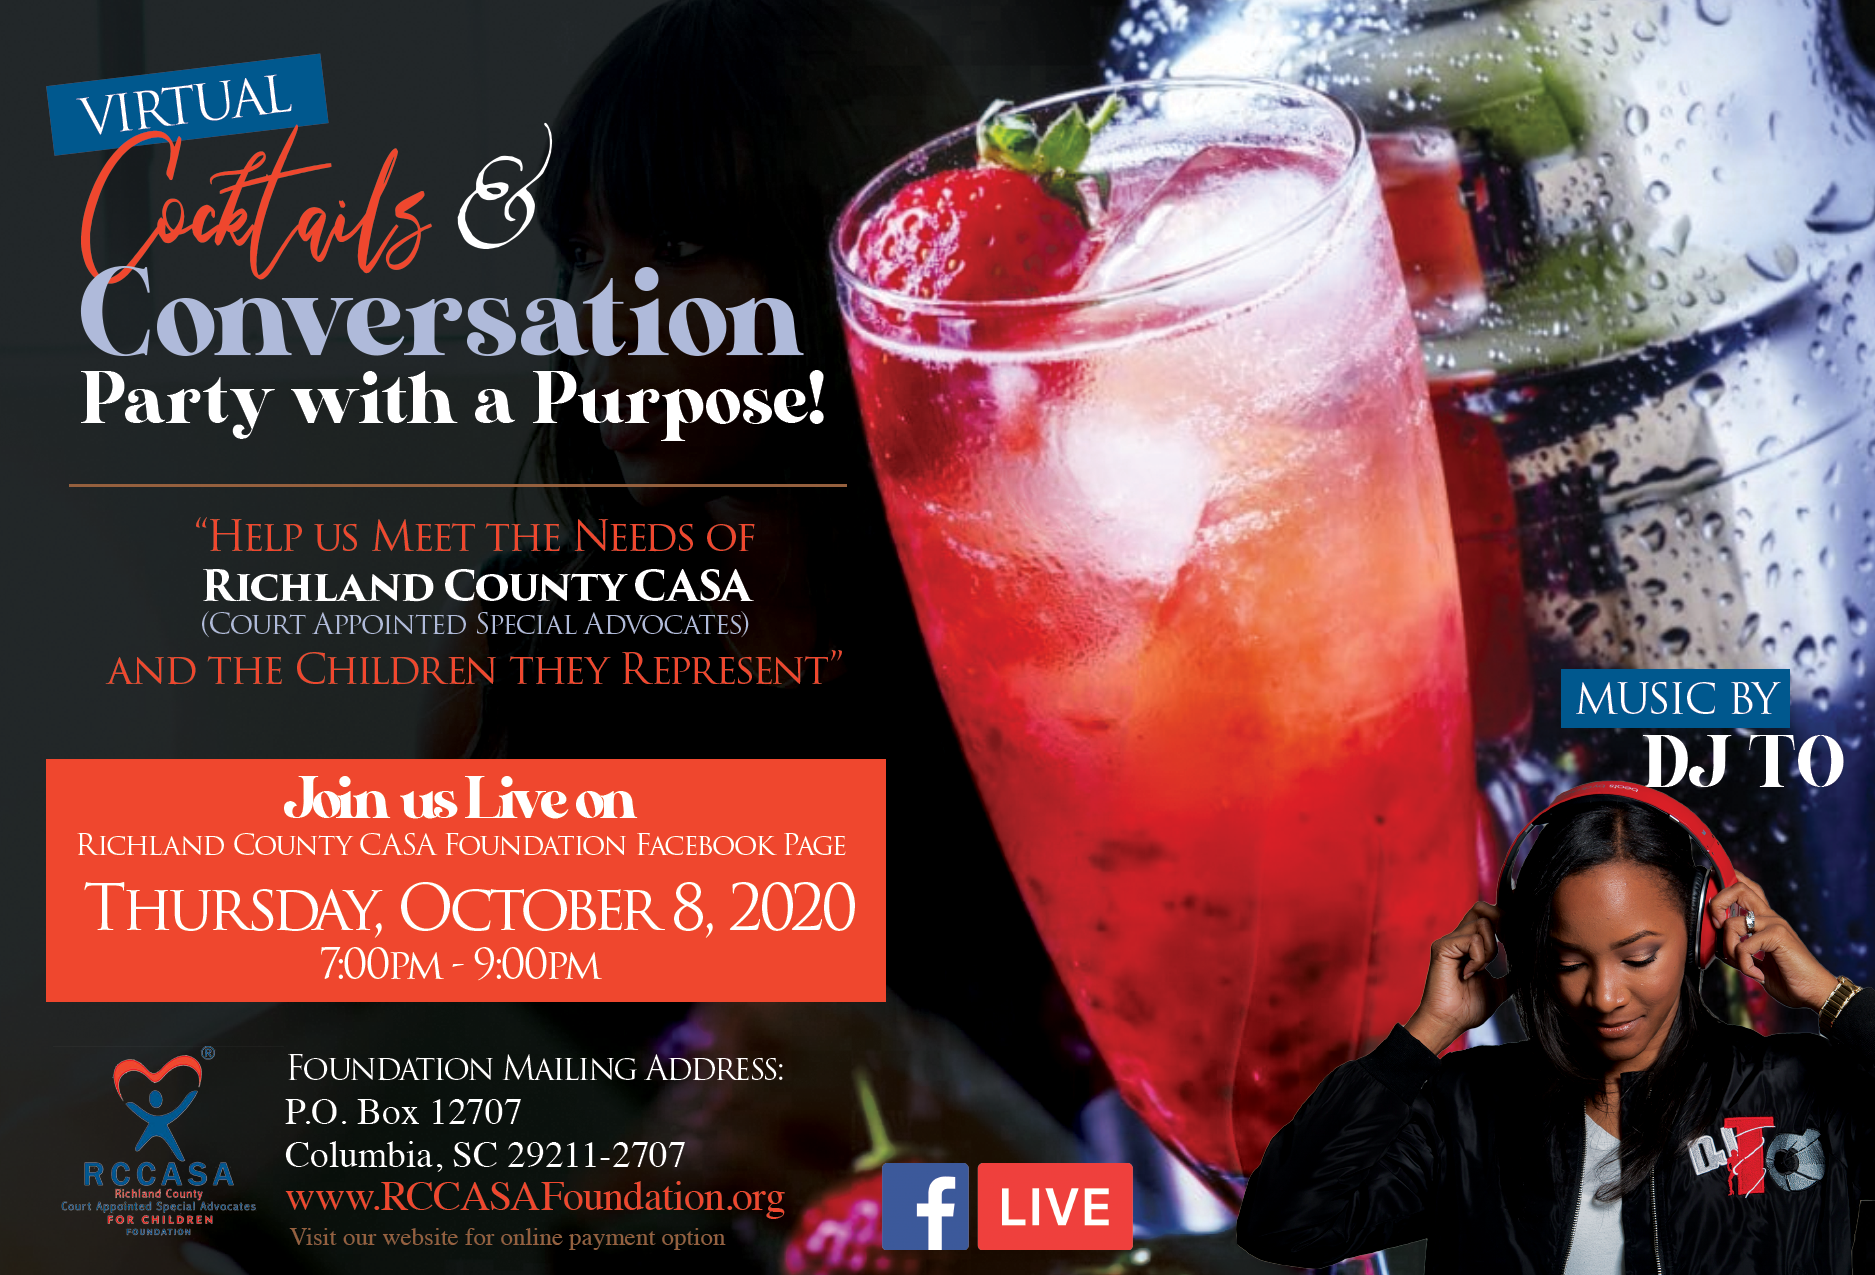 Cocktails & Conversation Party with a Purpose - Oct 8